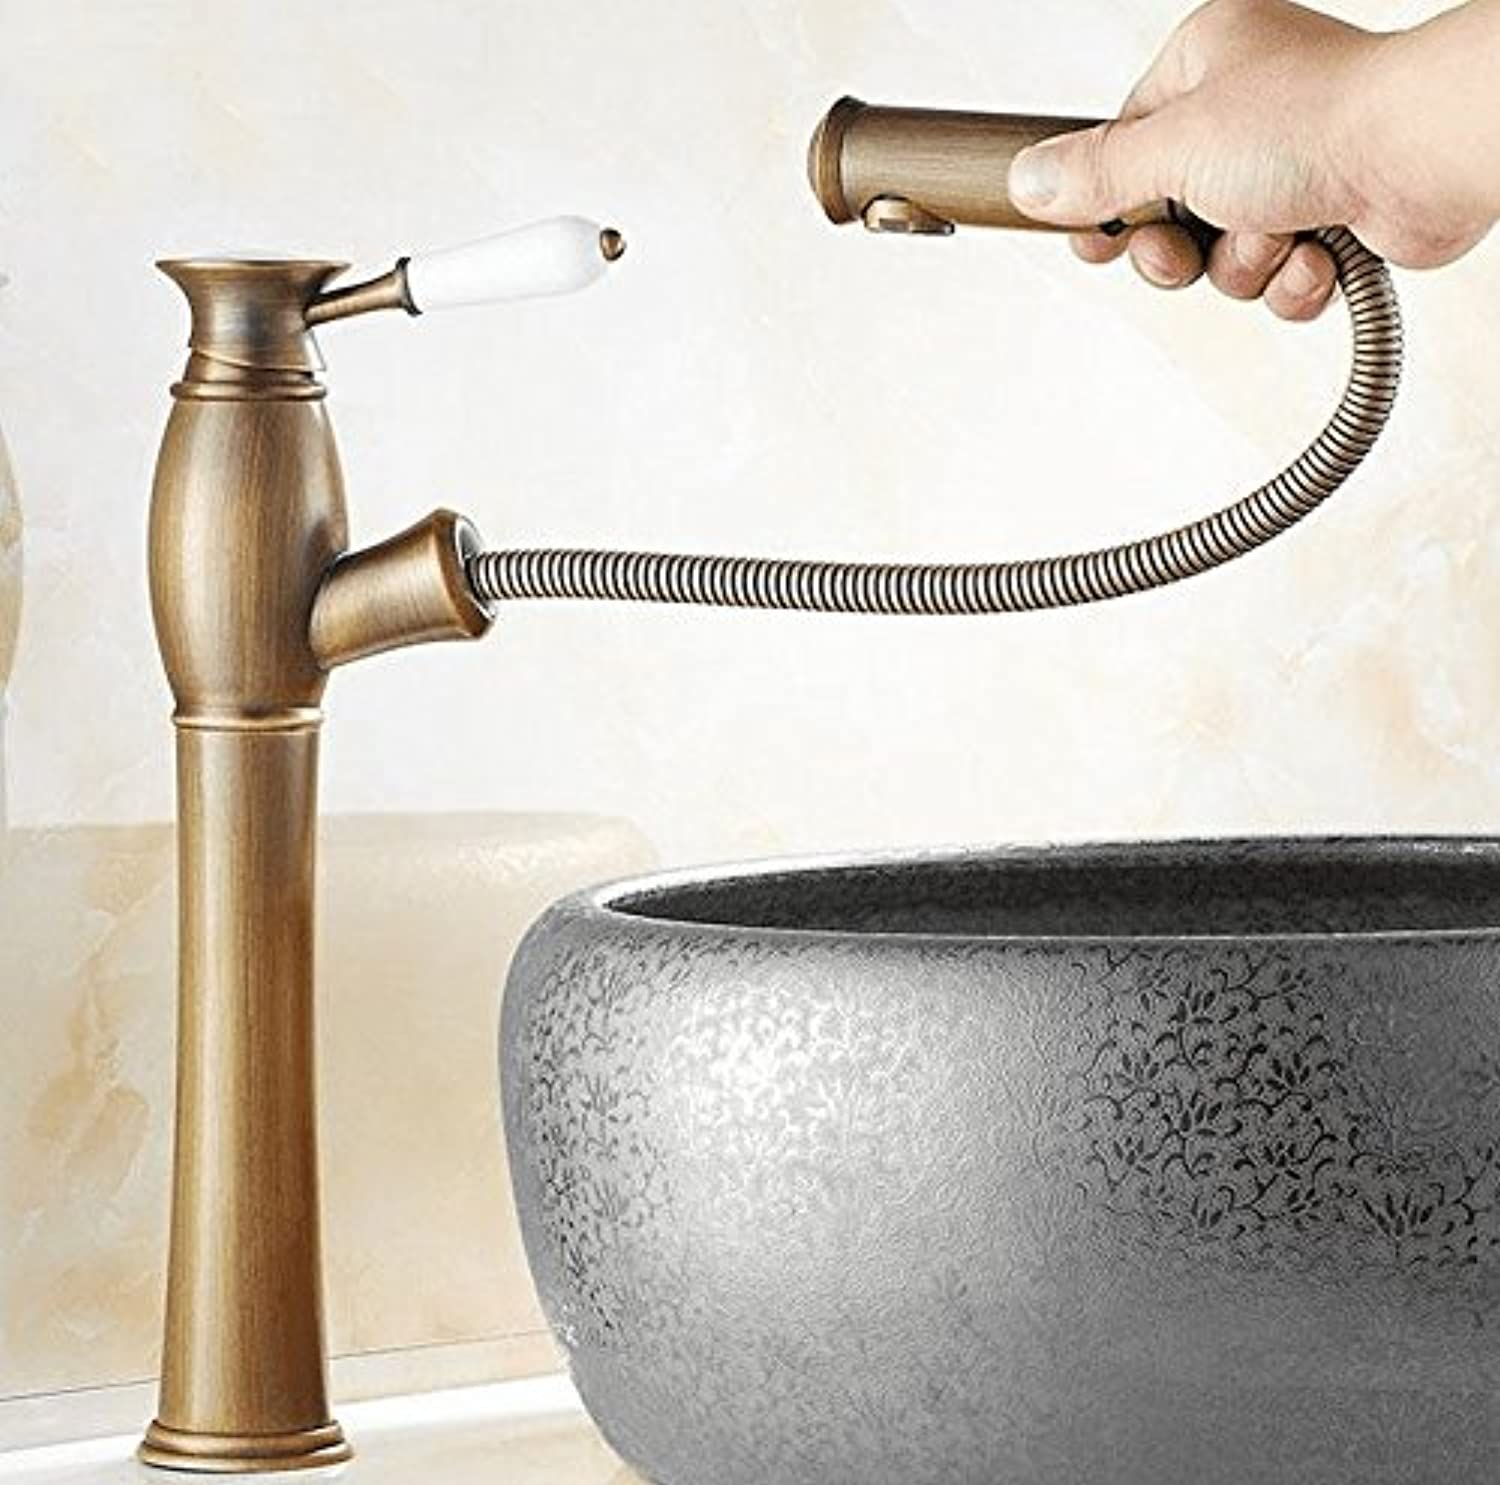 AWXJX Sink Taps copper European retro style bathroom Basin Pull out Hot and cold